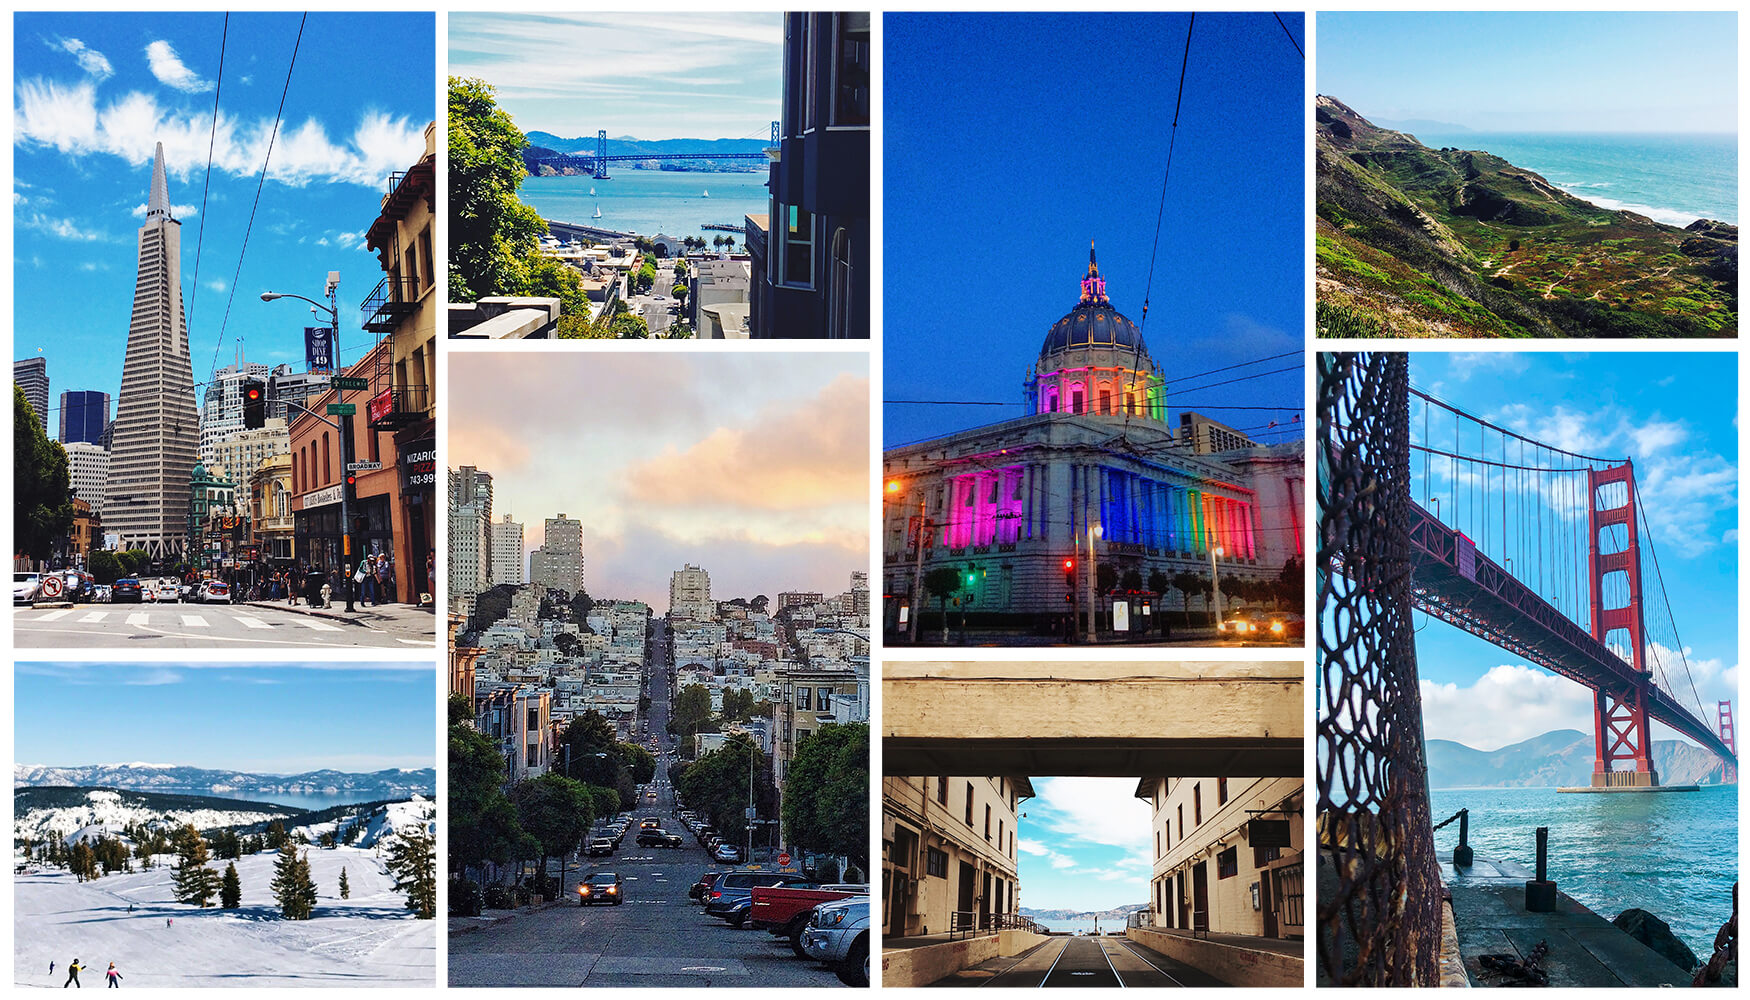 Four Years in San Francisco, and I'm Still Not Sure if I Love It or Hate It